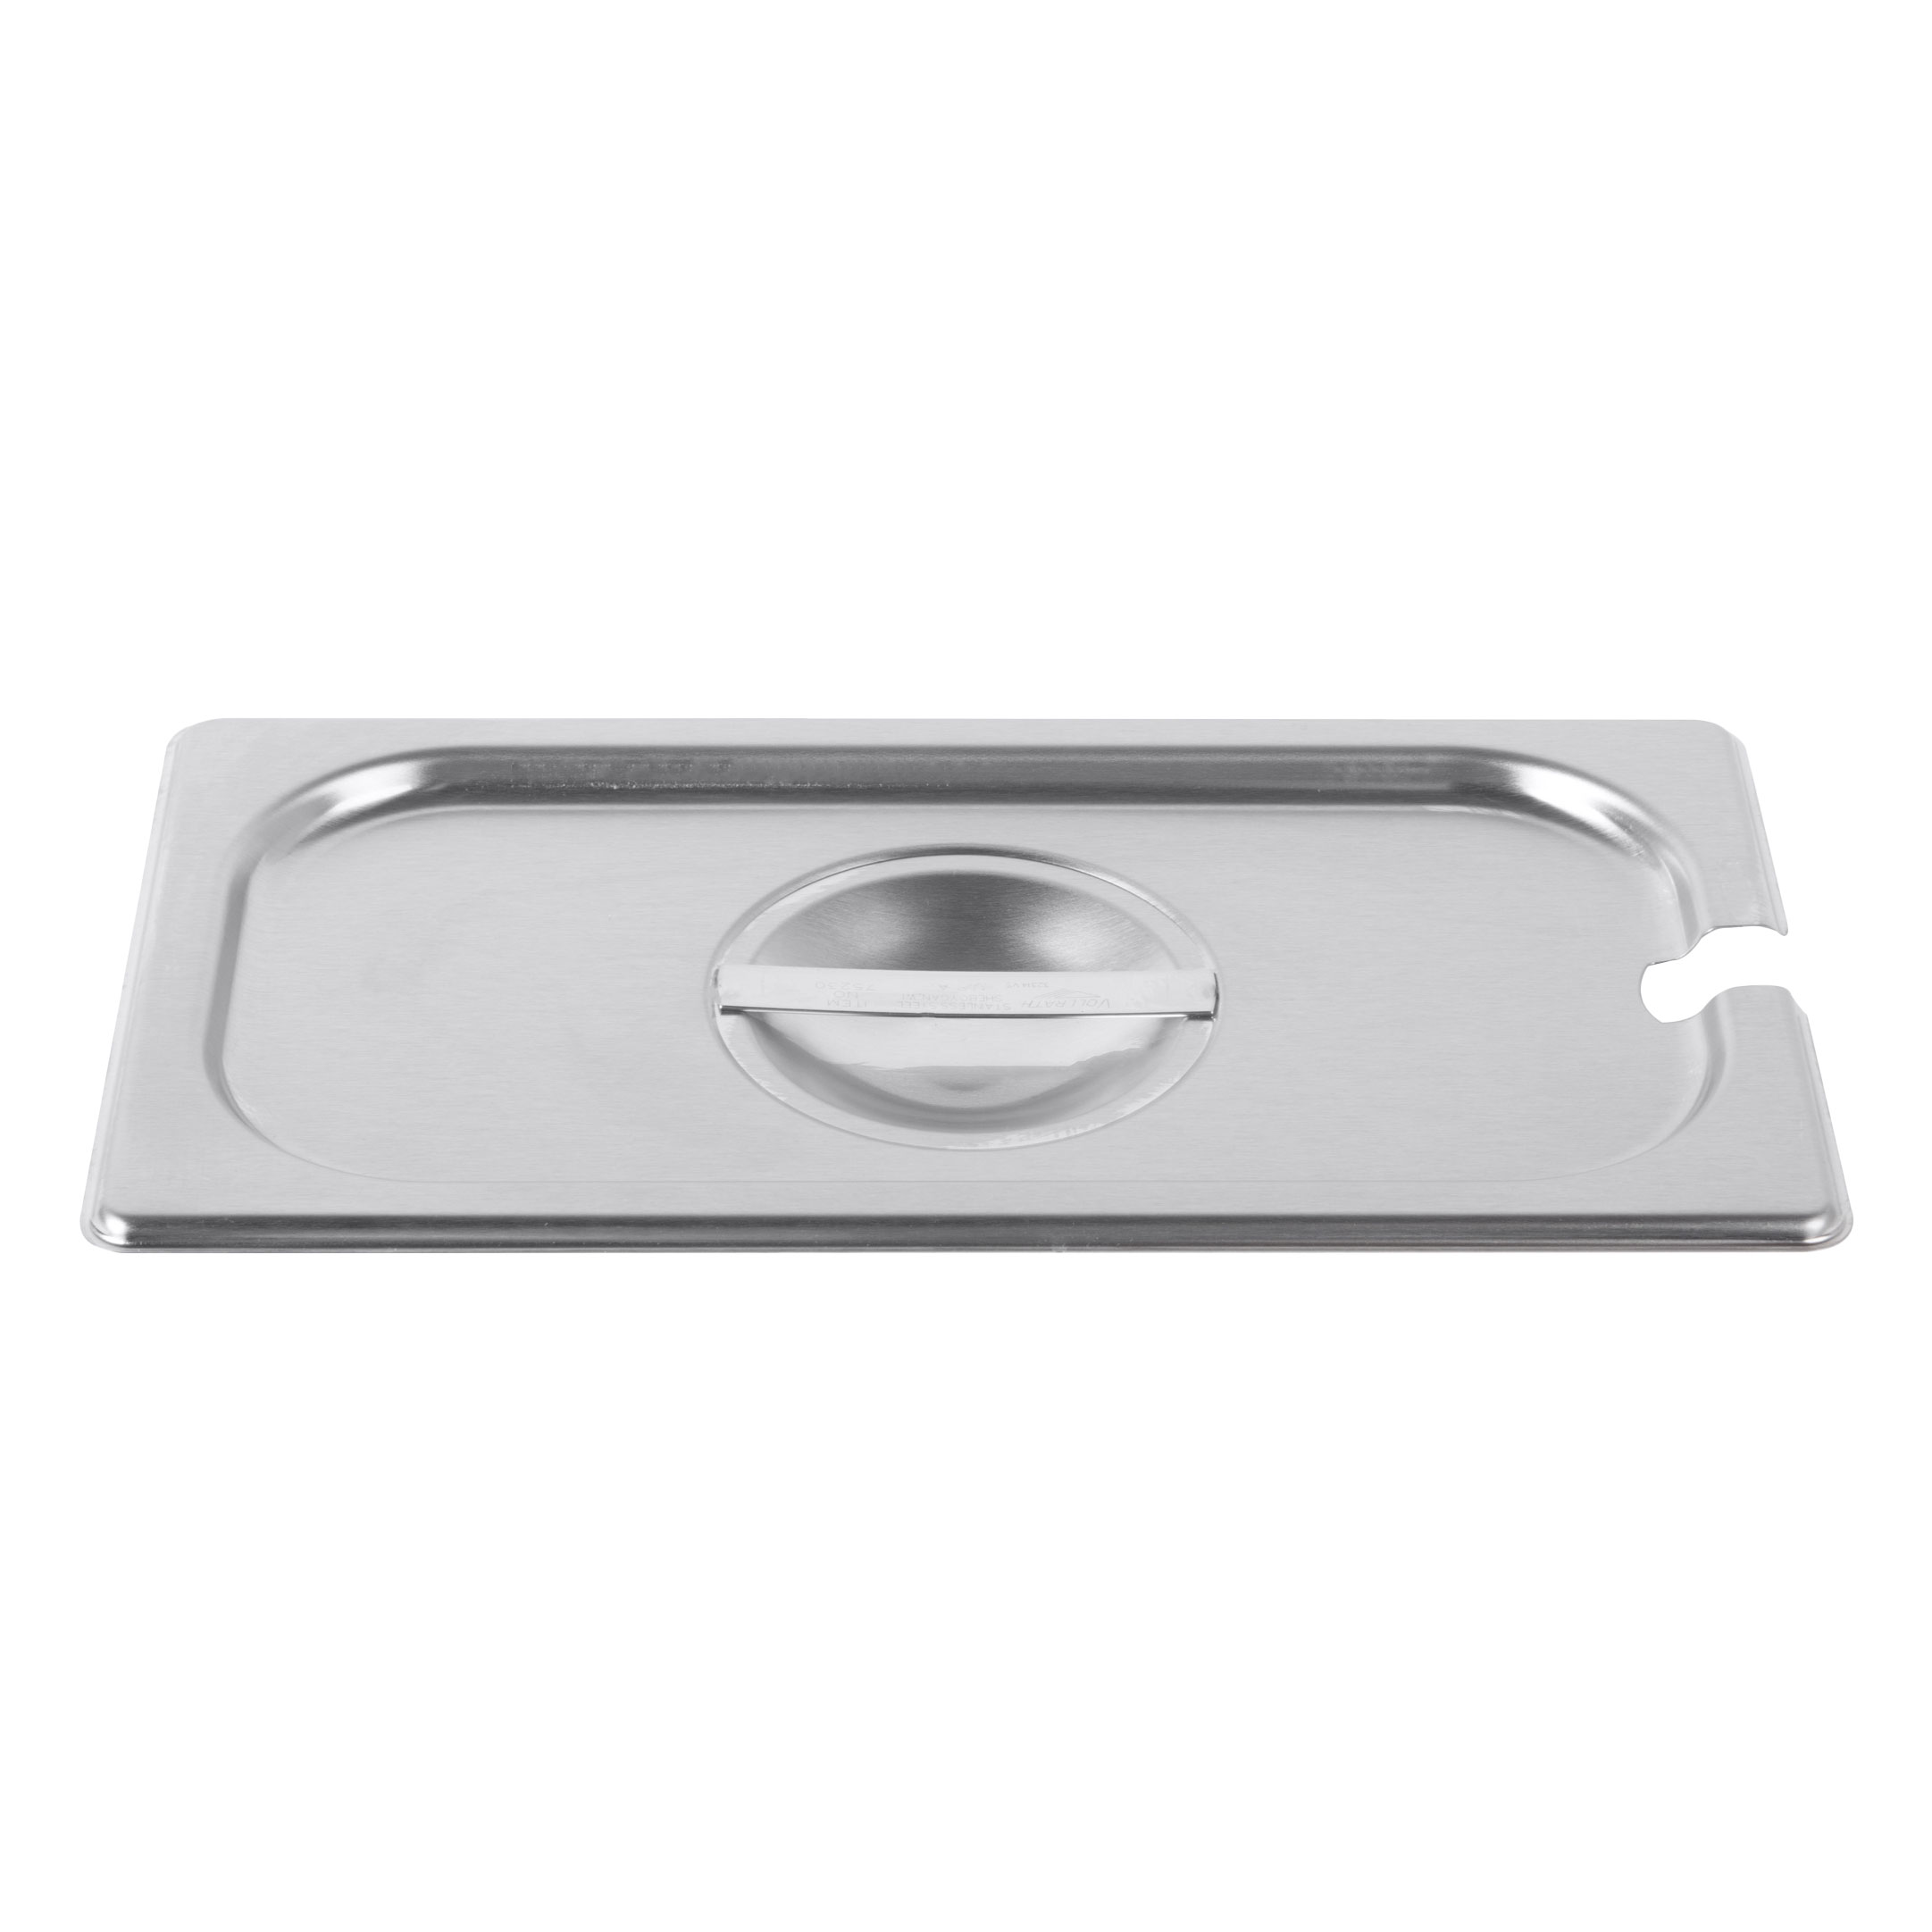 Vollrath 75230 steam table pan cover, stainless steel